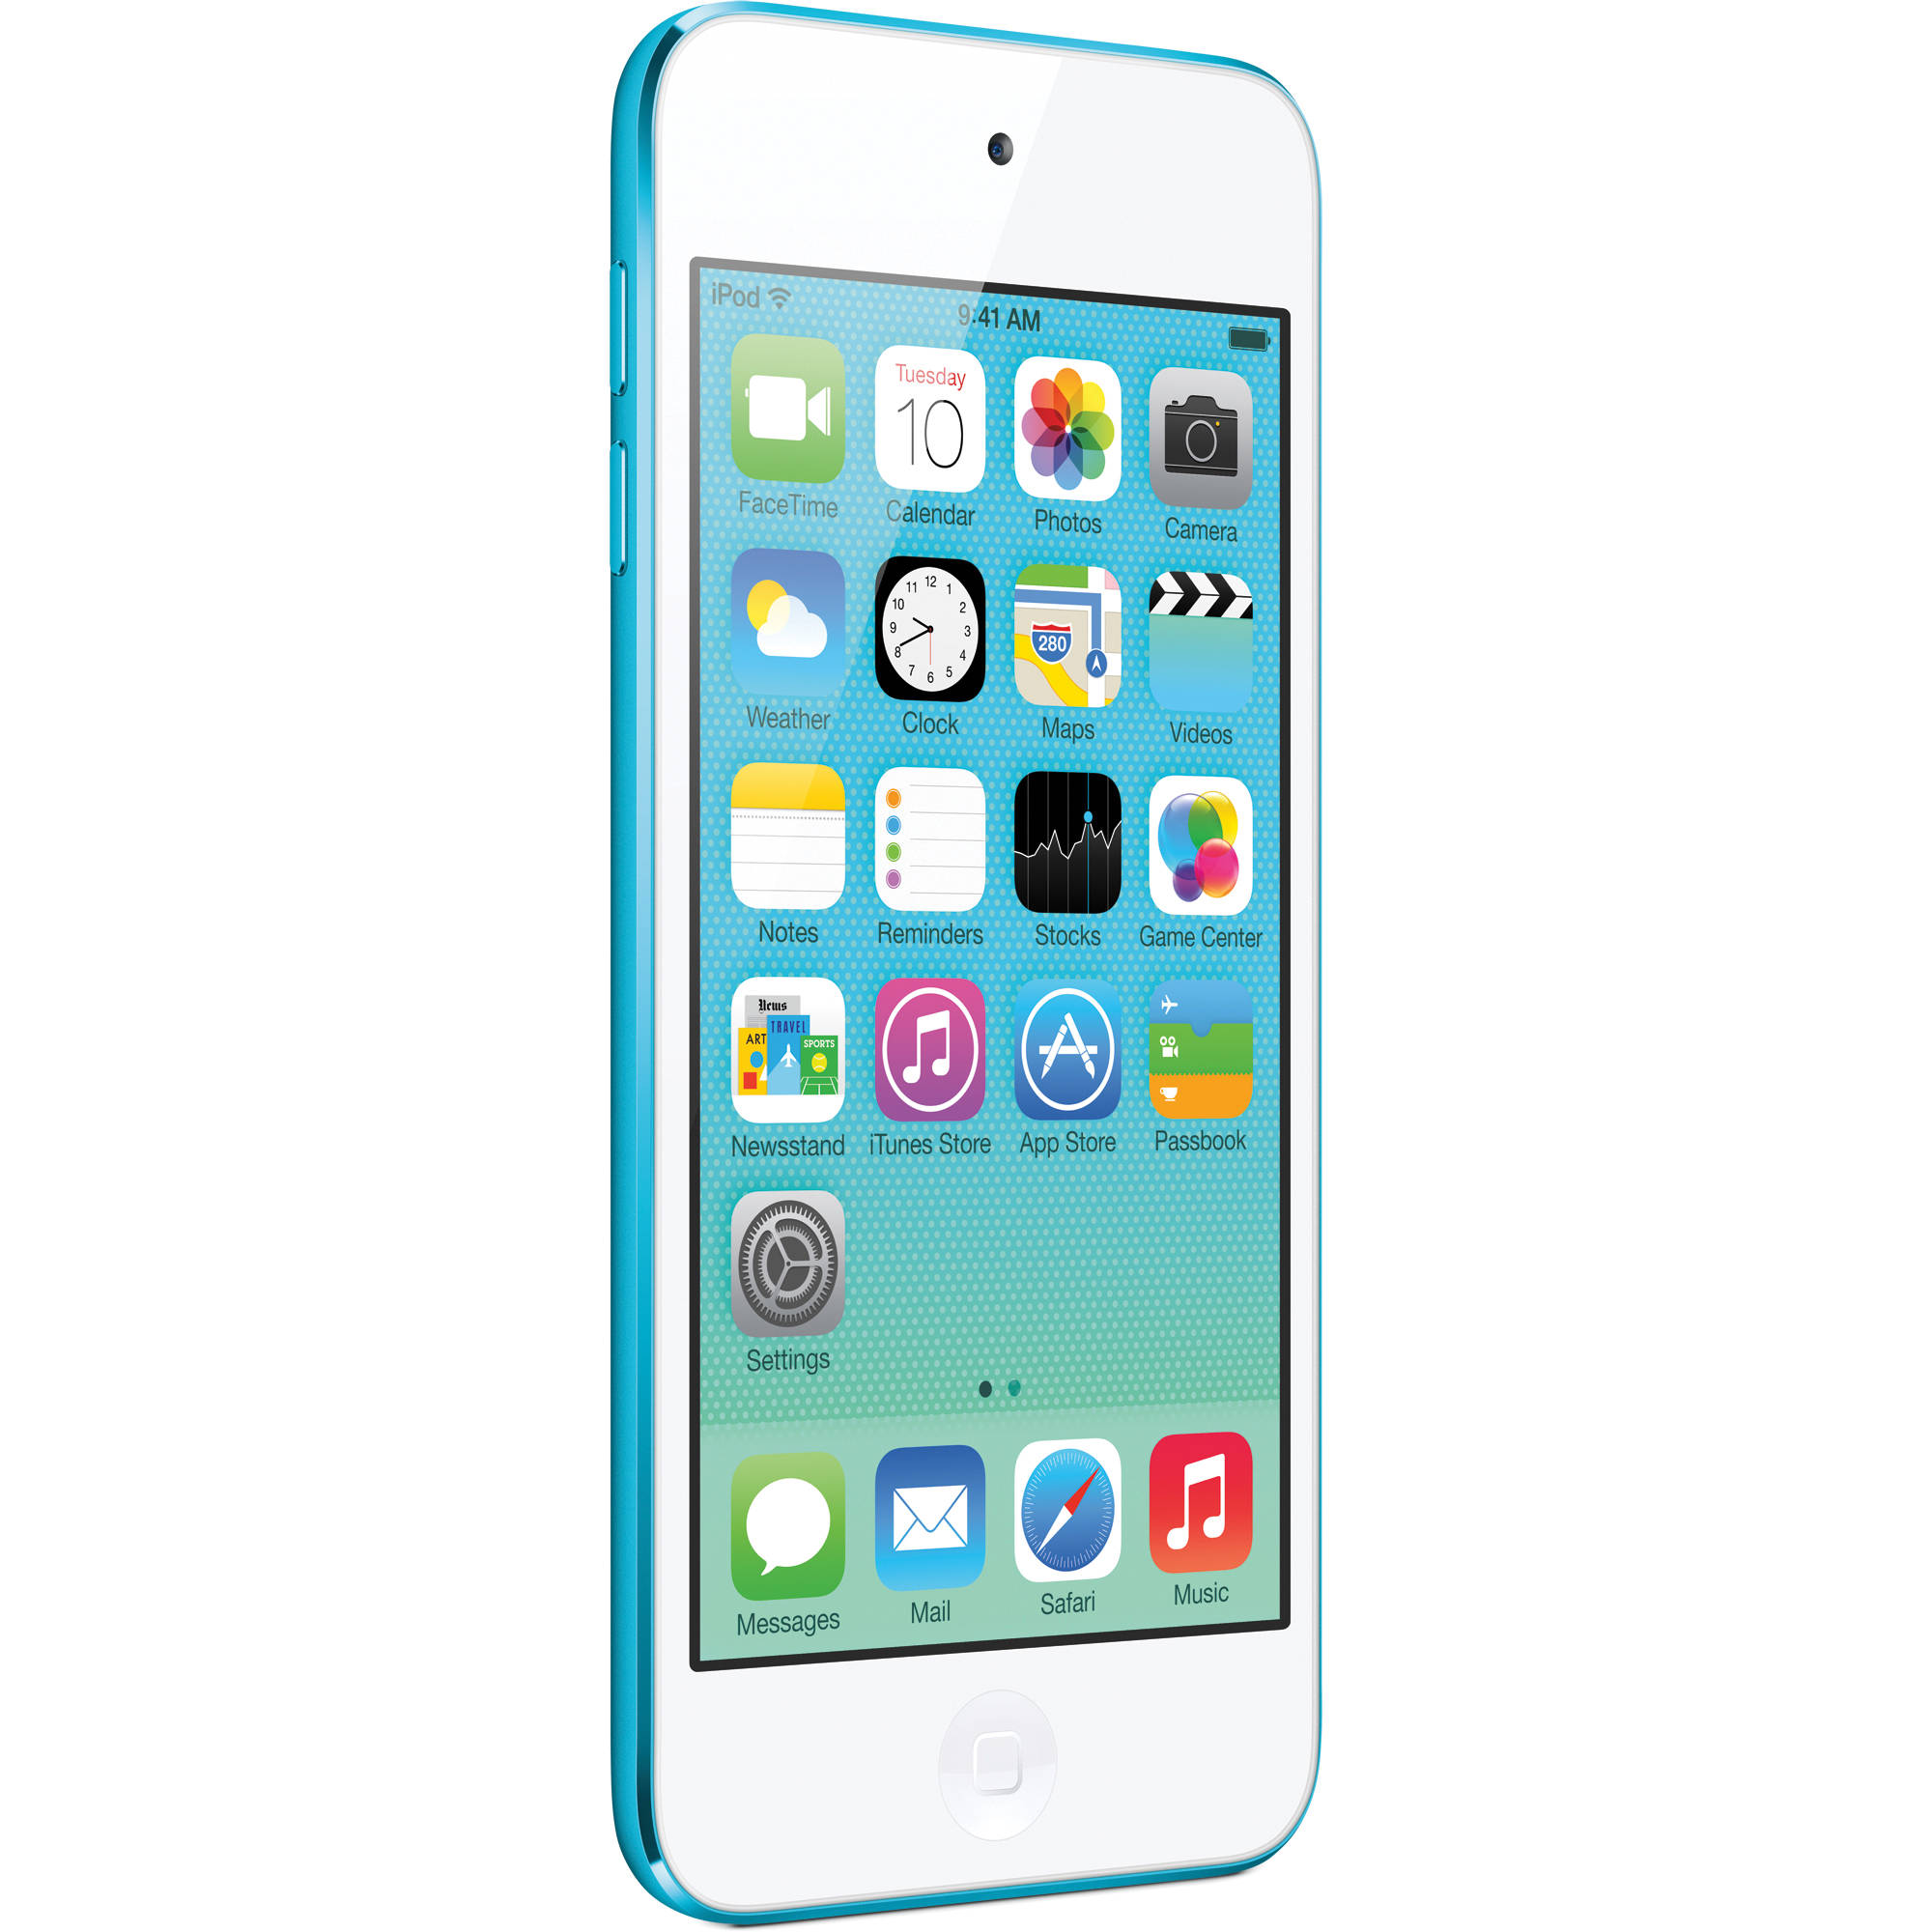 Apple 16GB iPod touch (Blue) (5th Generation) MGG32LL/A B&H